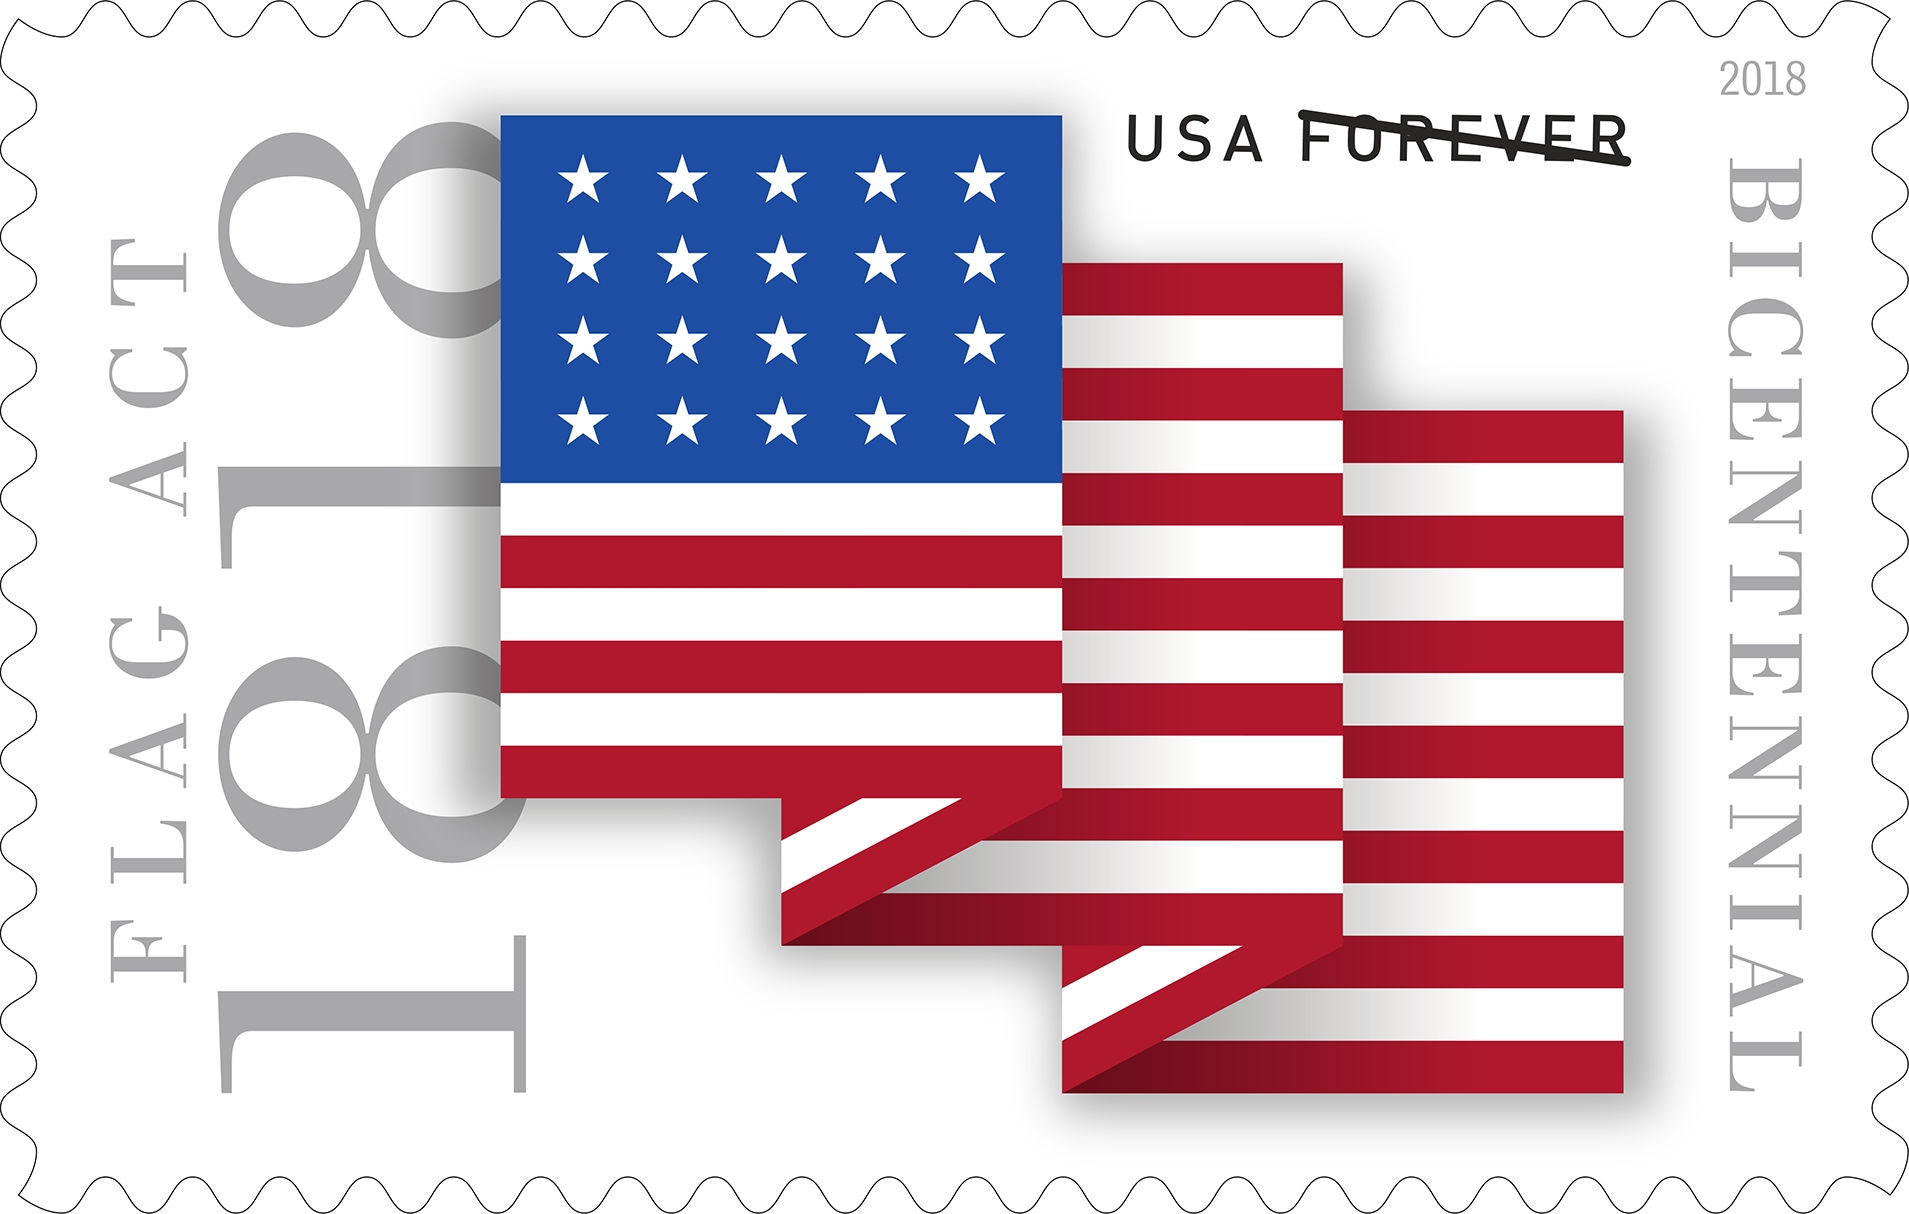 Flag Act of 1818: With this stamp, the Postal Service marks the 200th anniversary of the Flag Act of 1818, which gave us the basic design of the current American flag: 13 stripes symbolizing the original 13 colonies and one star for each state in the union.  (USPS)